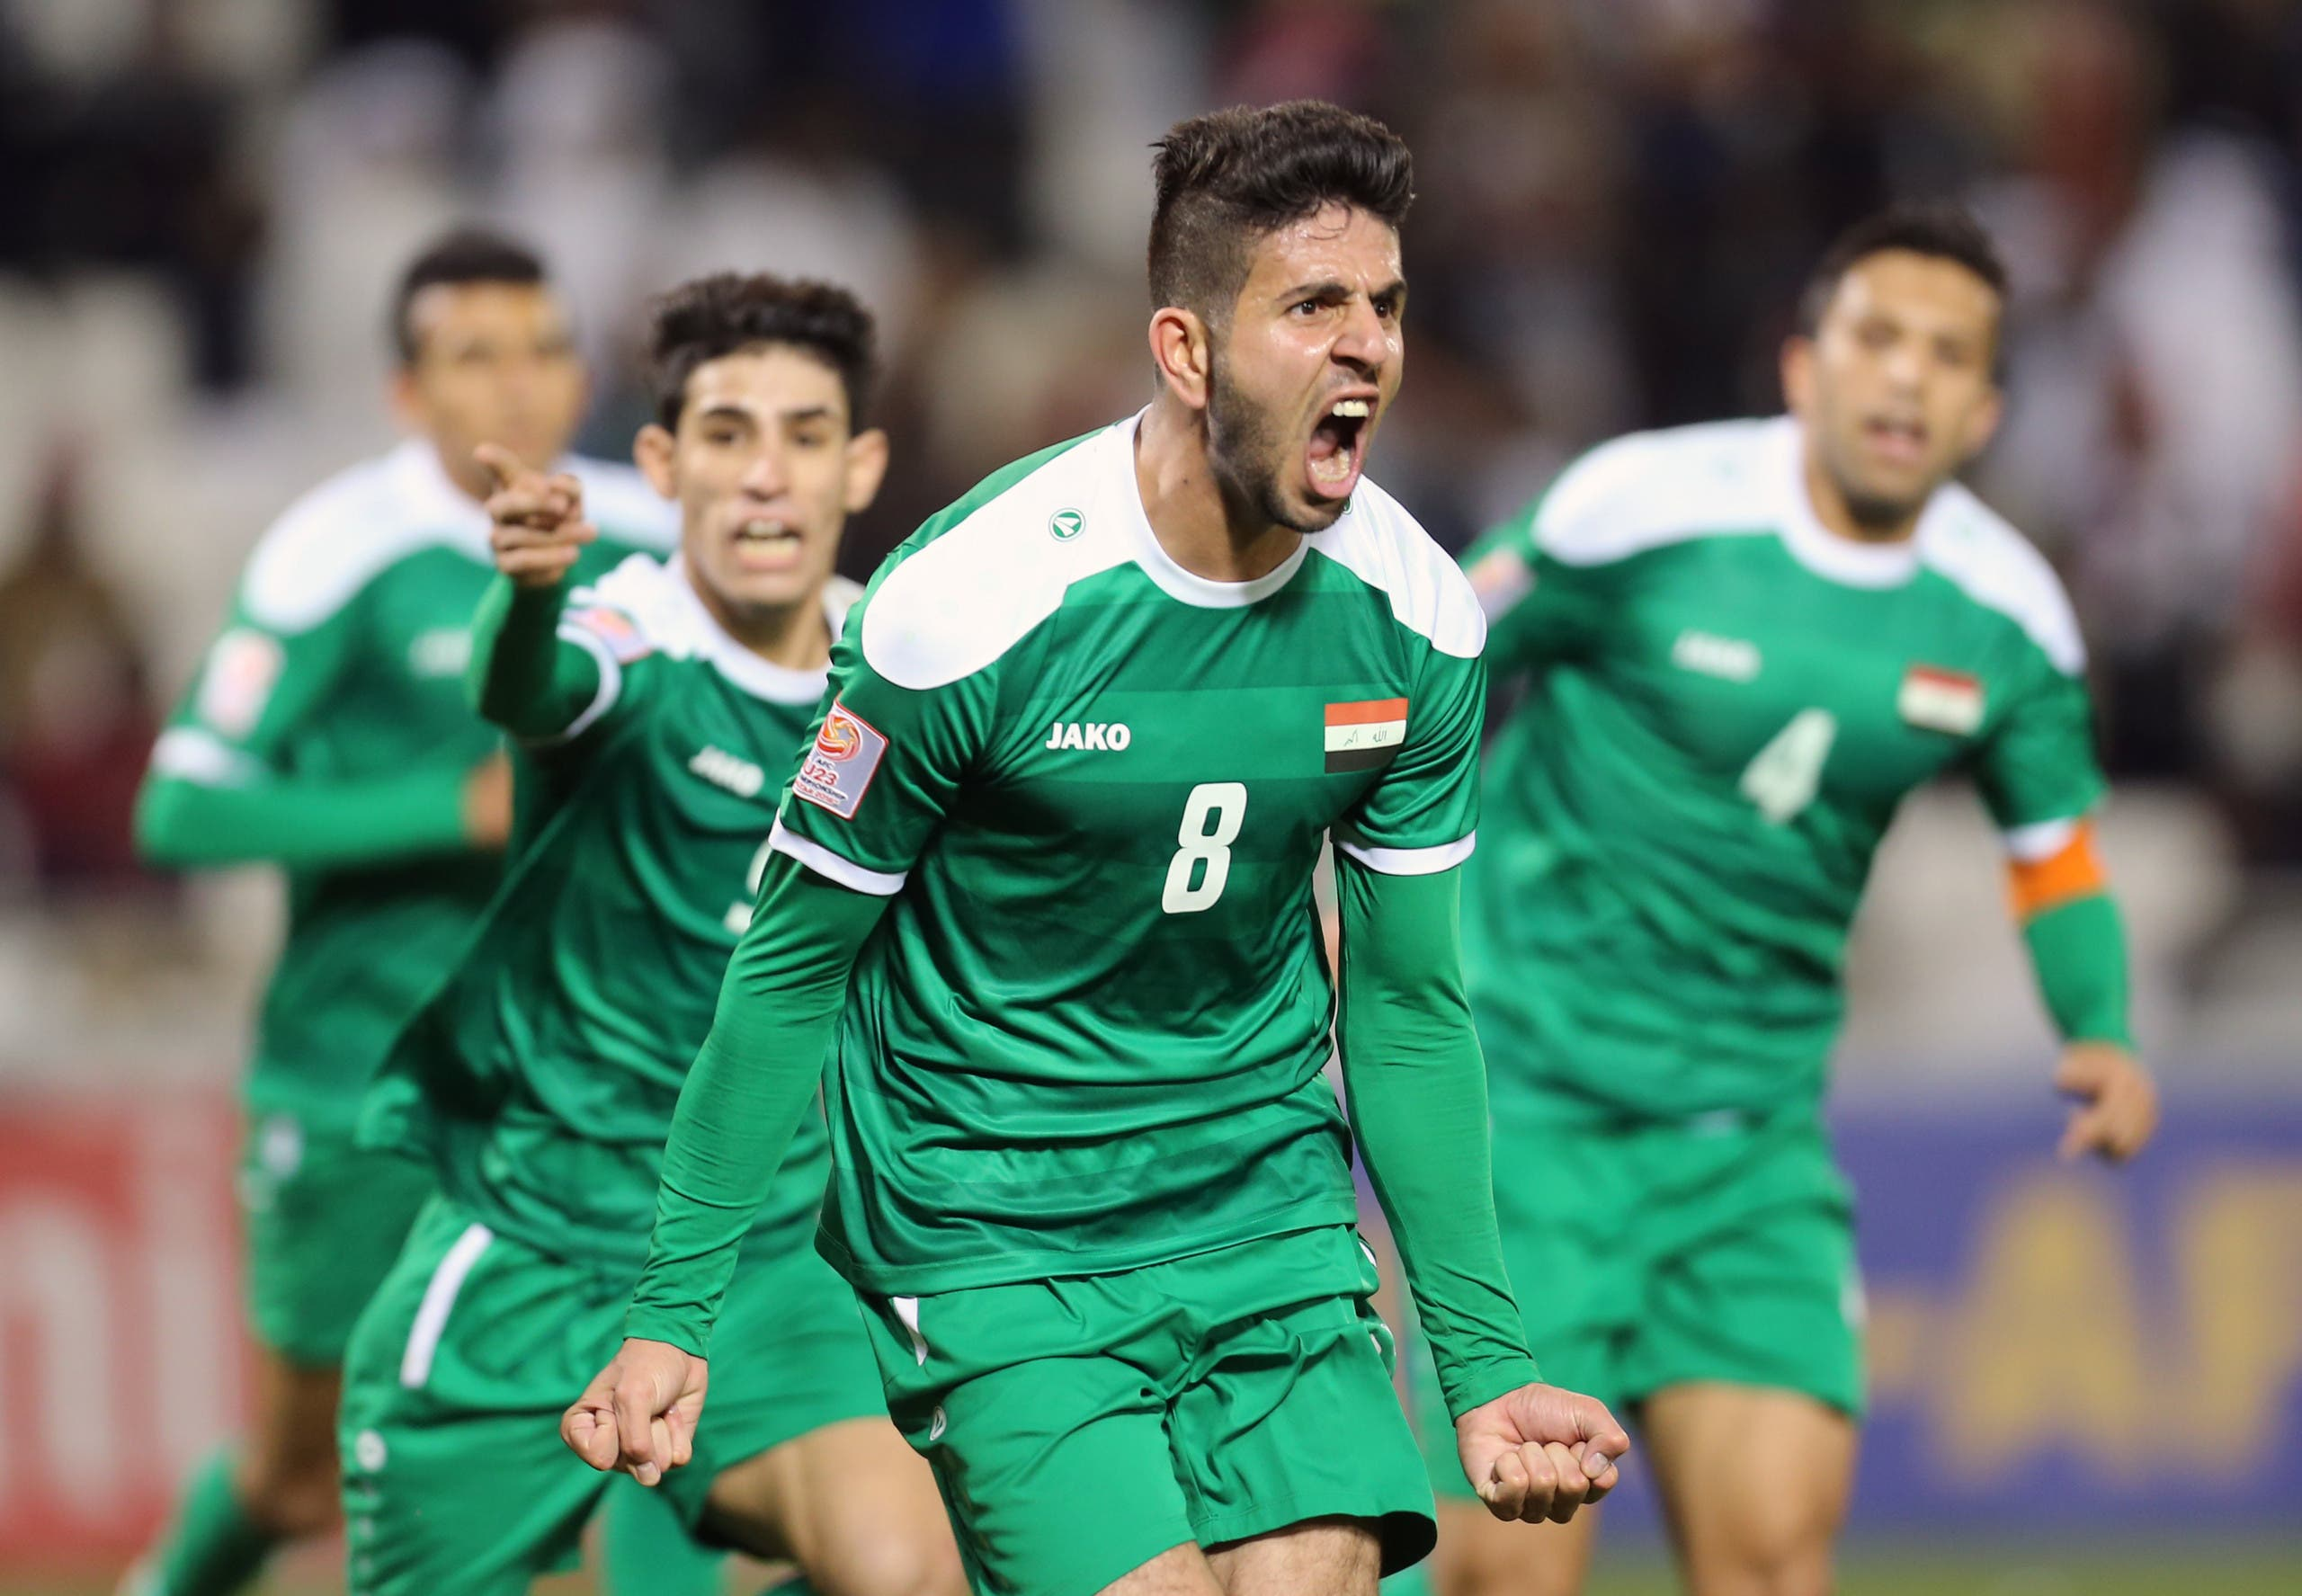 Iraq's forward Mohanad Abdulraheem Karrar celebrates scoring his team's equalizing goal during their AFC U23 Championship 3rd place football match between Qatar and Iraq in Doha on January 29, 2016. (AFP)